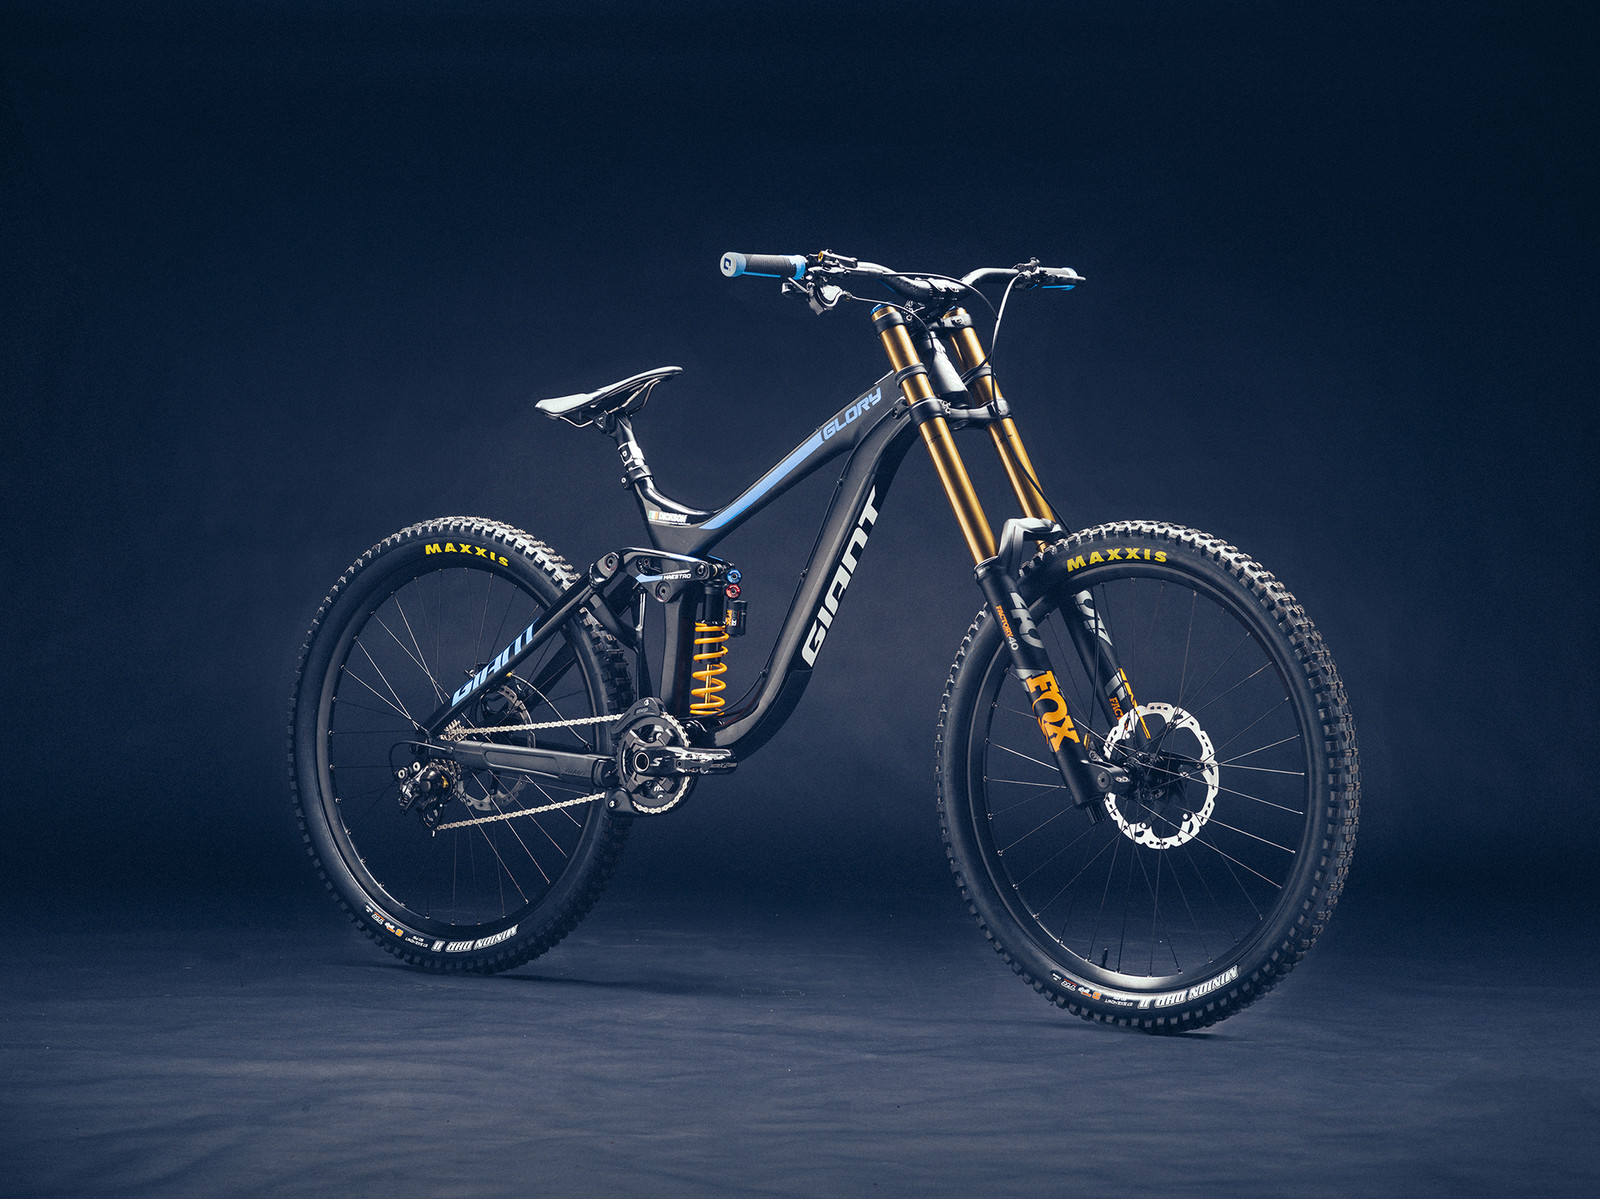 The downhill squad including Marcelo Gutierrez, Jacob Dickson and Eliot Jackson will race their Glory Advanced bikes with new FOX suspension products throughout the year.